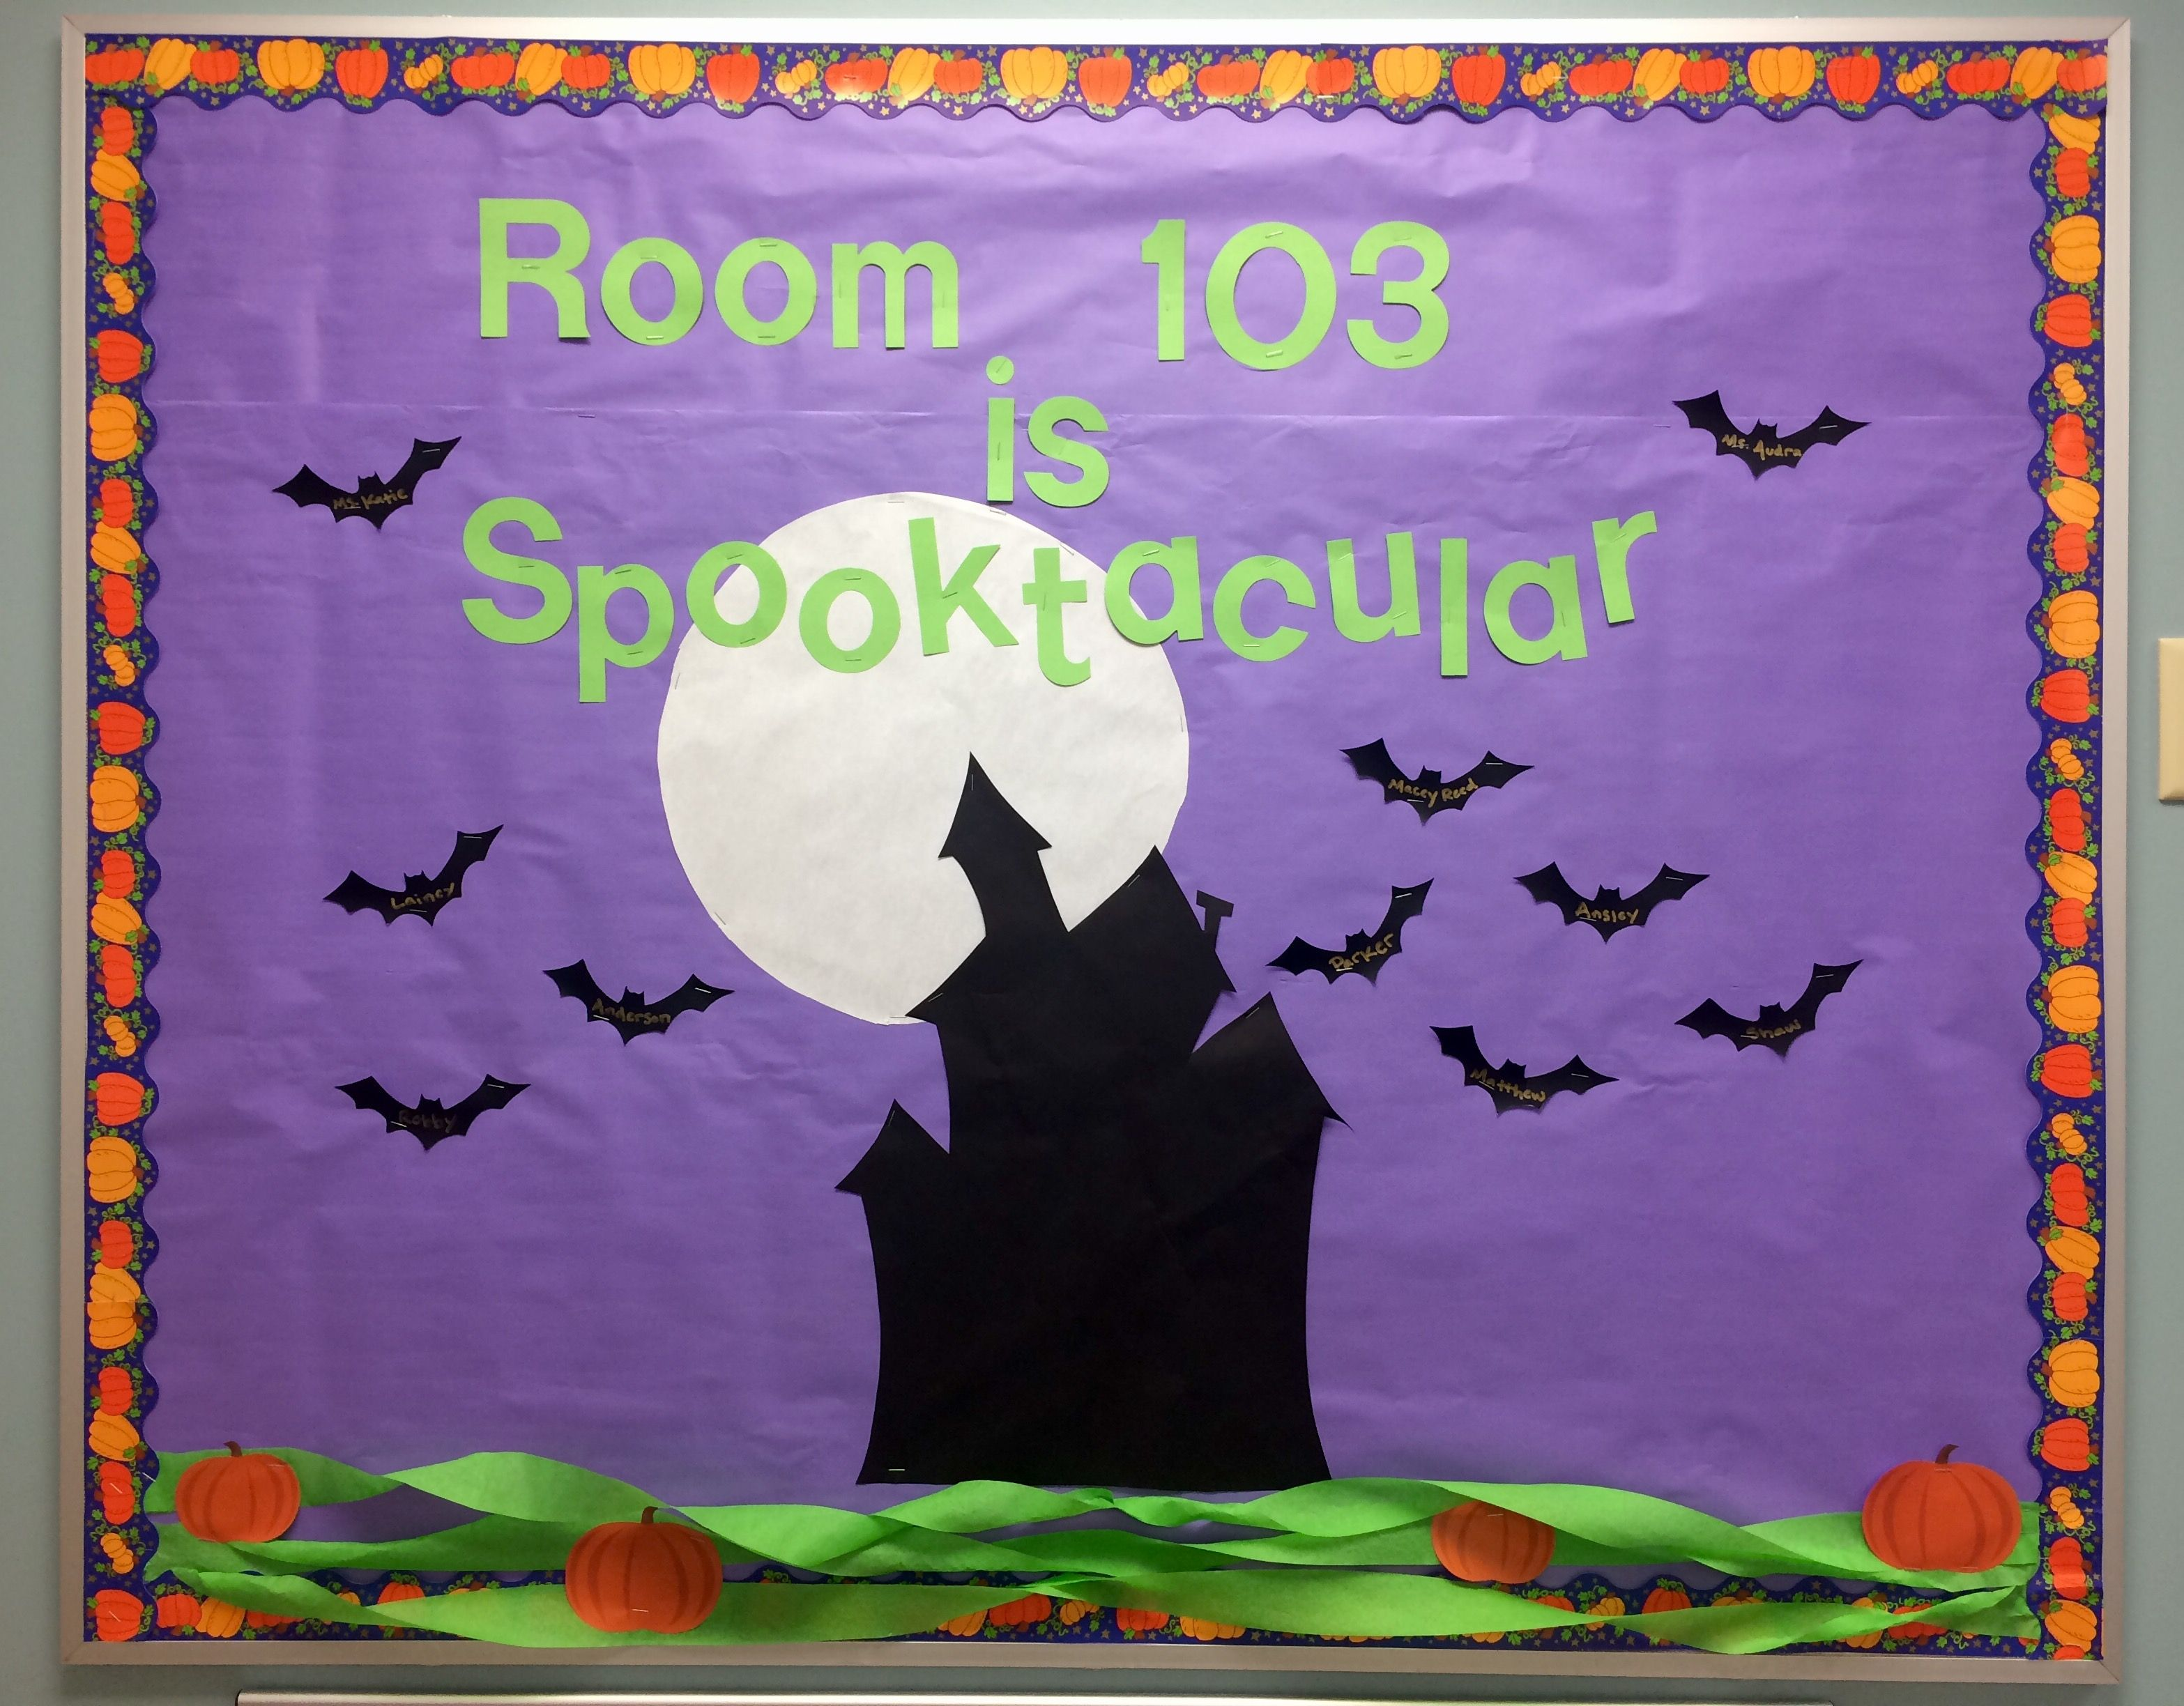 Preschool halloween bulletin board daycare october katie smith class room decor also best images classroom ideas rh pinterest